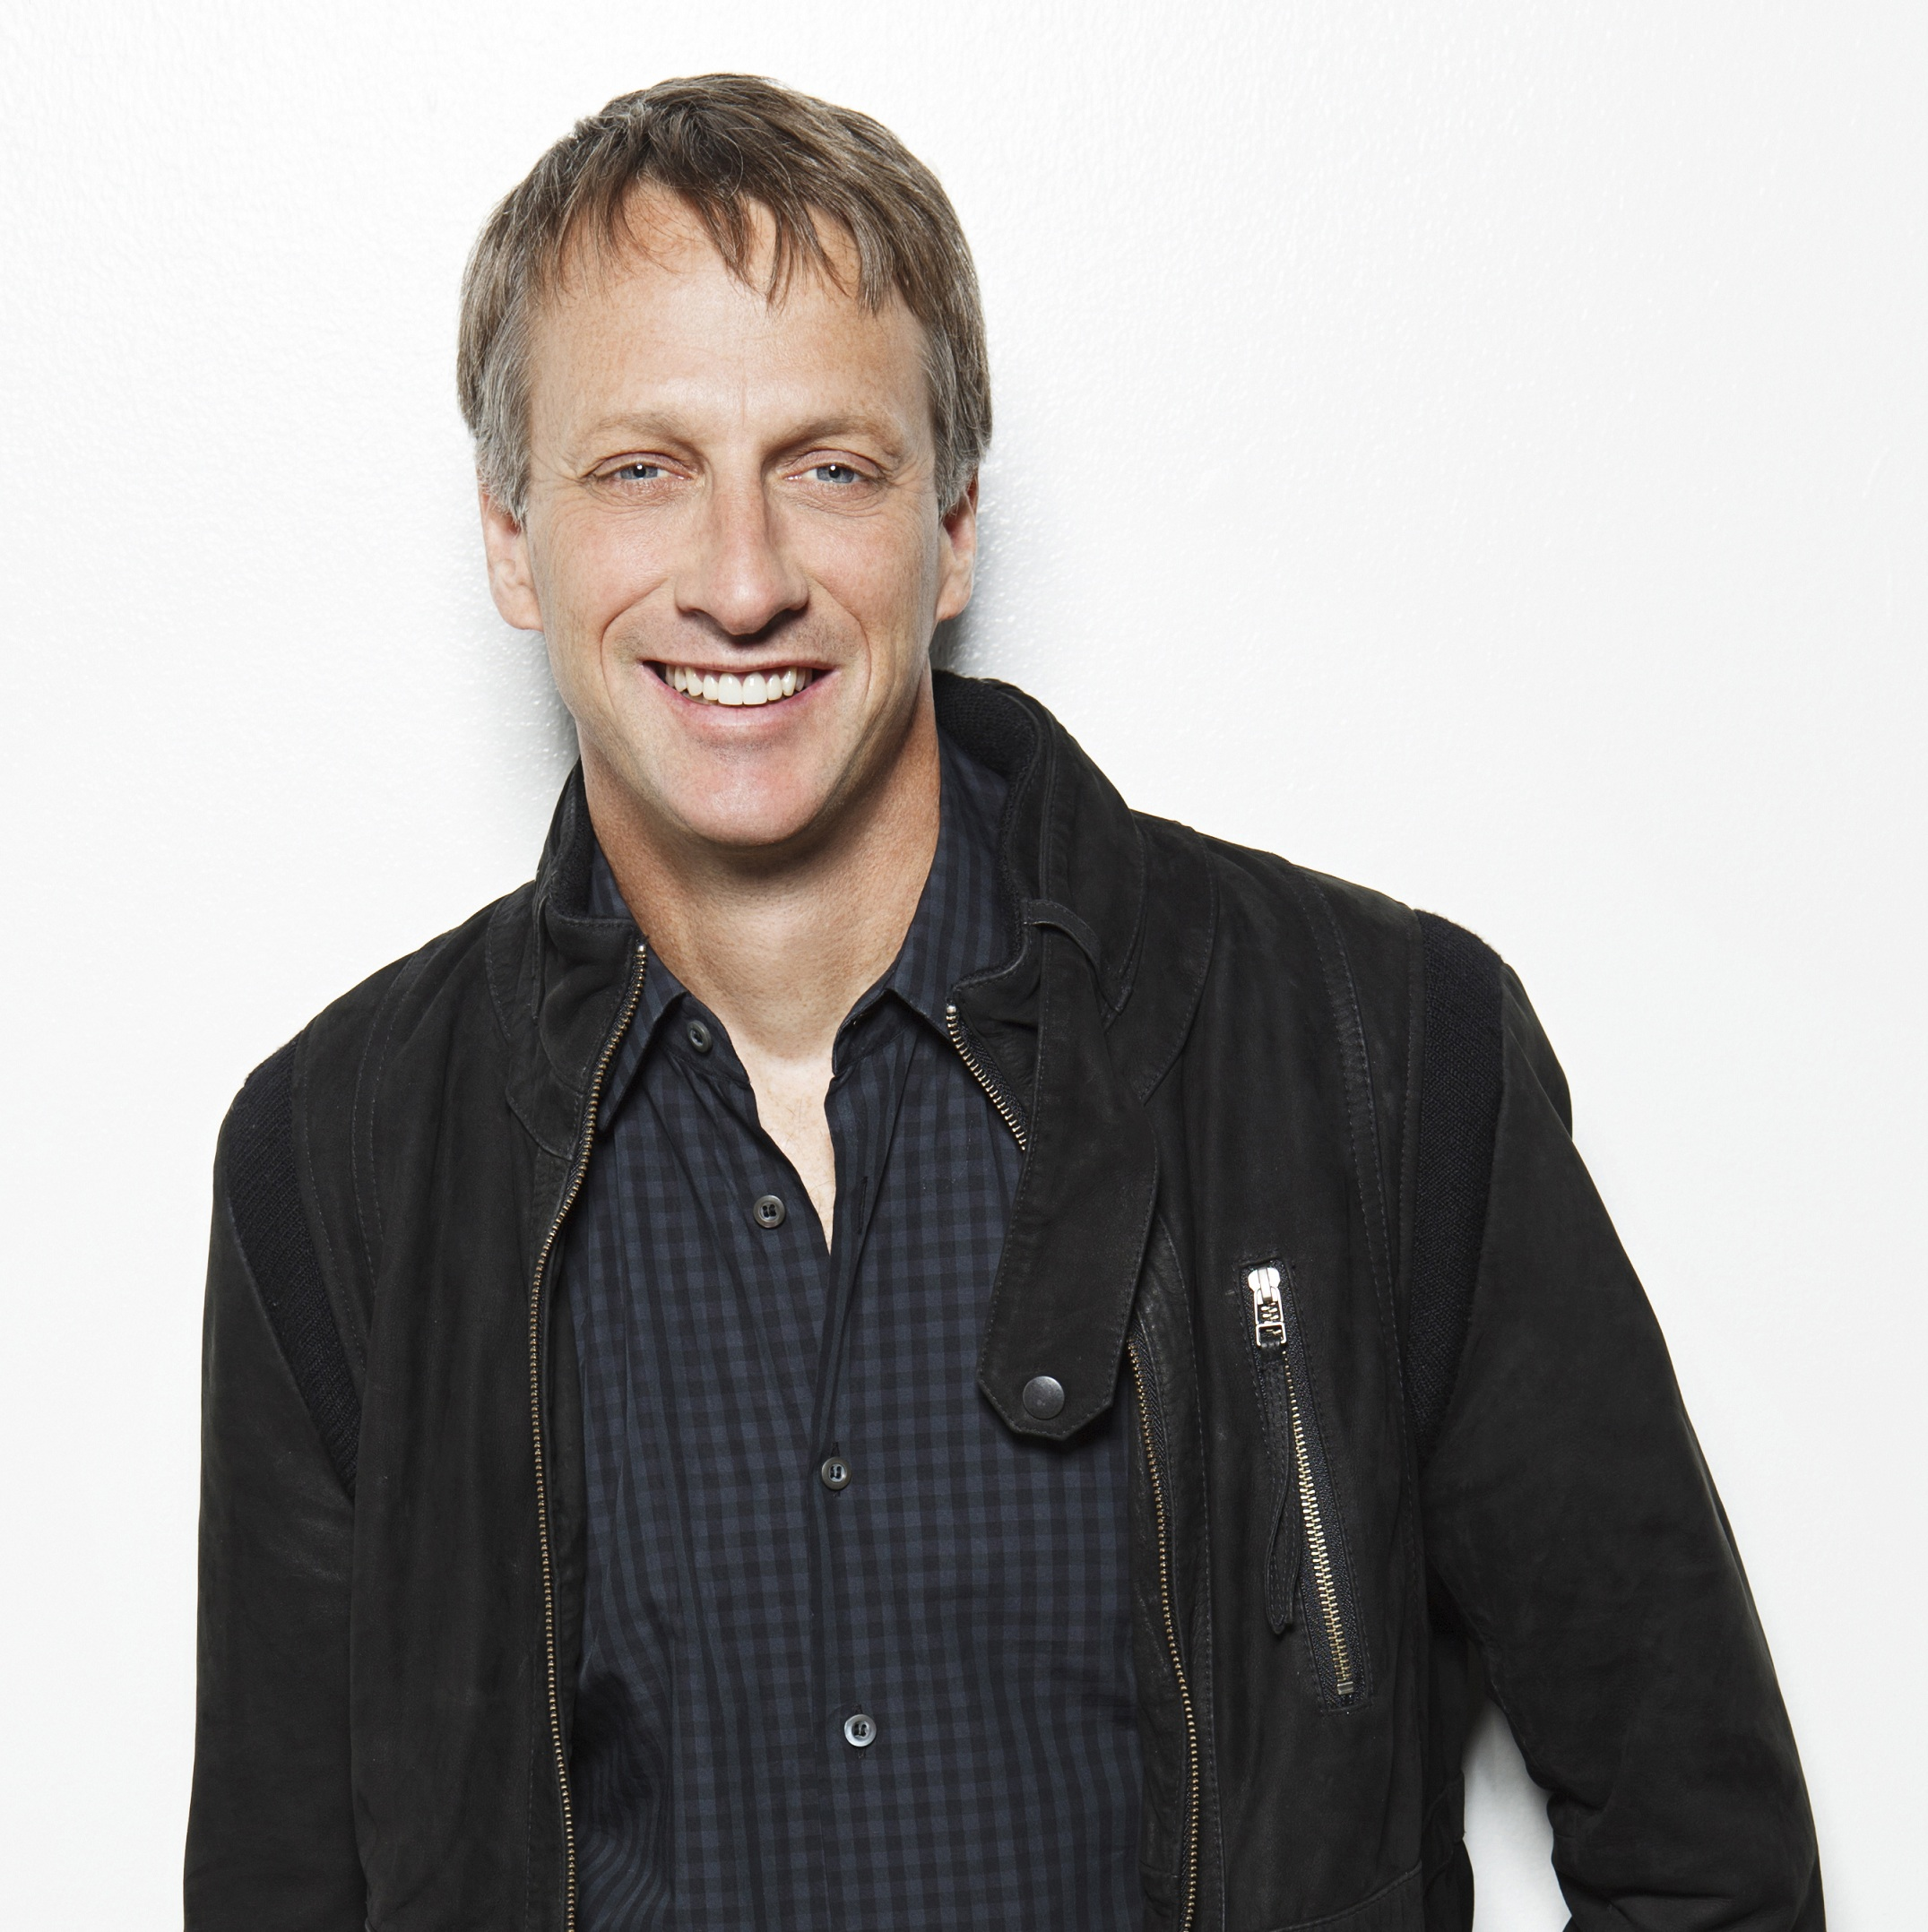 Skateboarder Tony Hawk - age: 52